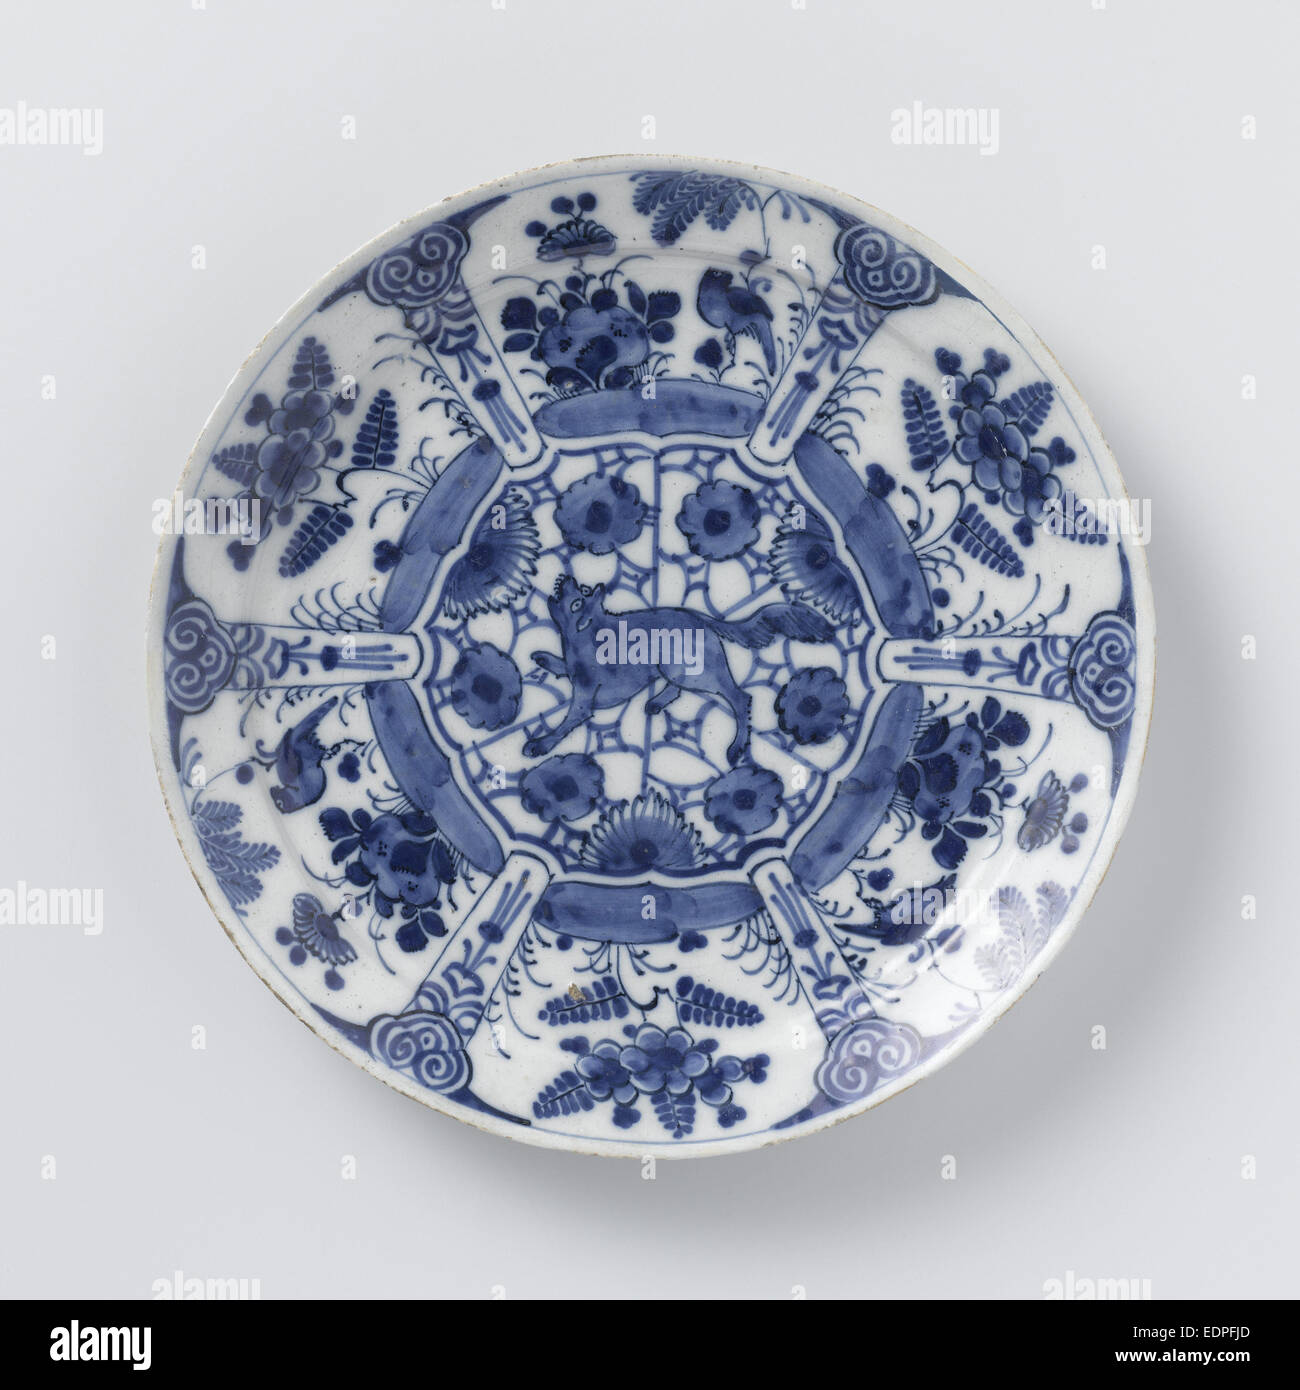 Blue and white Delft pottery, decorated with plants and birds and a growling wolf or fox in the middle - Stock Image